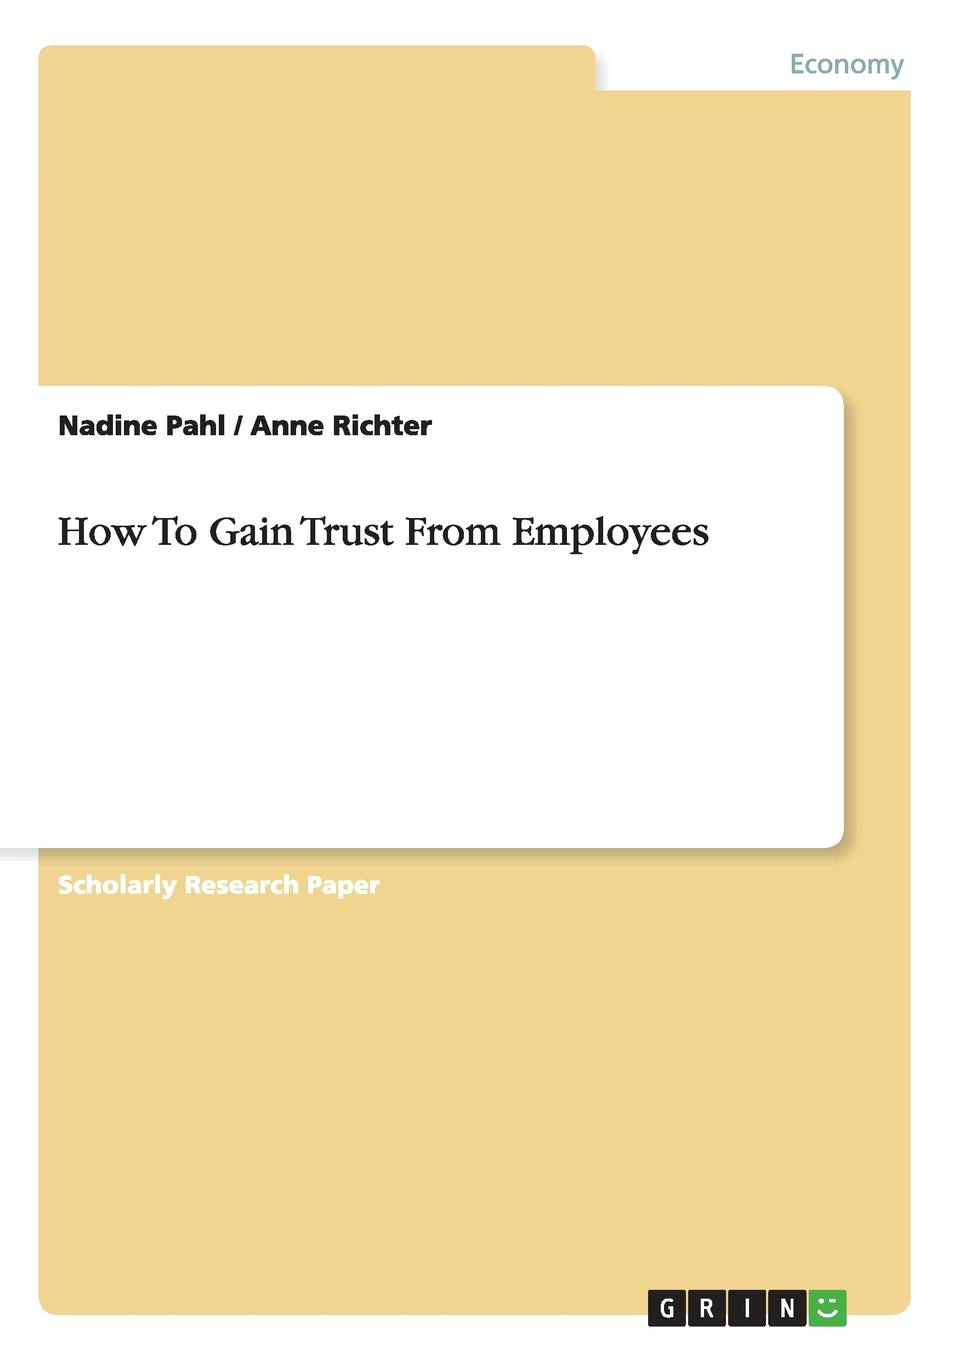 лучшая цена Nadine Pahl, Anne Richter How To Gain Trust From Employees